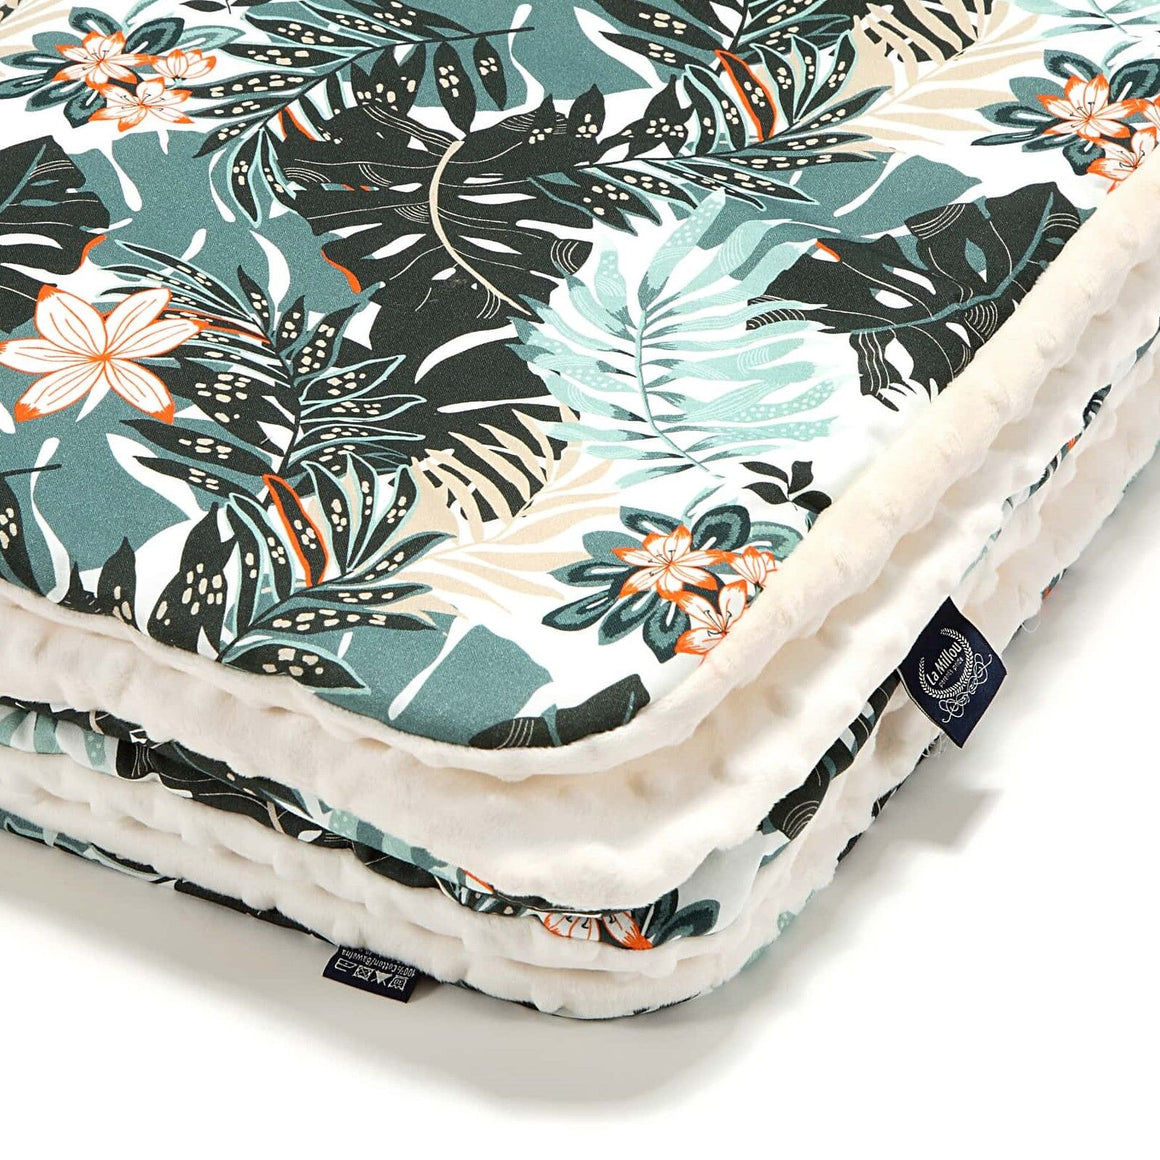 MEDIUM BLANKET peitto - Papagayo | Ecru